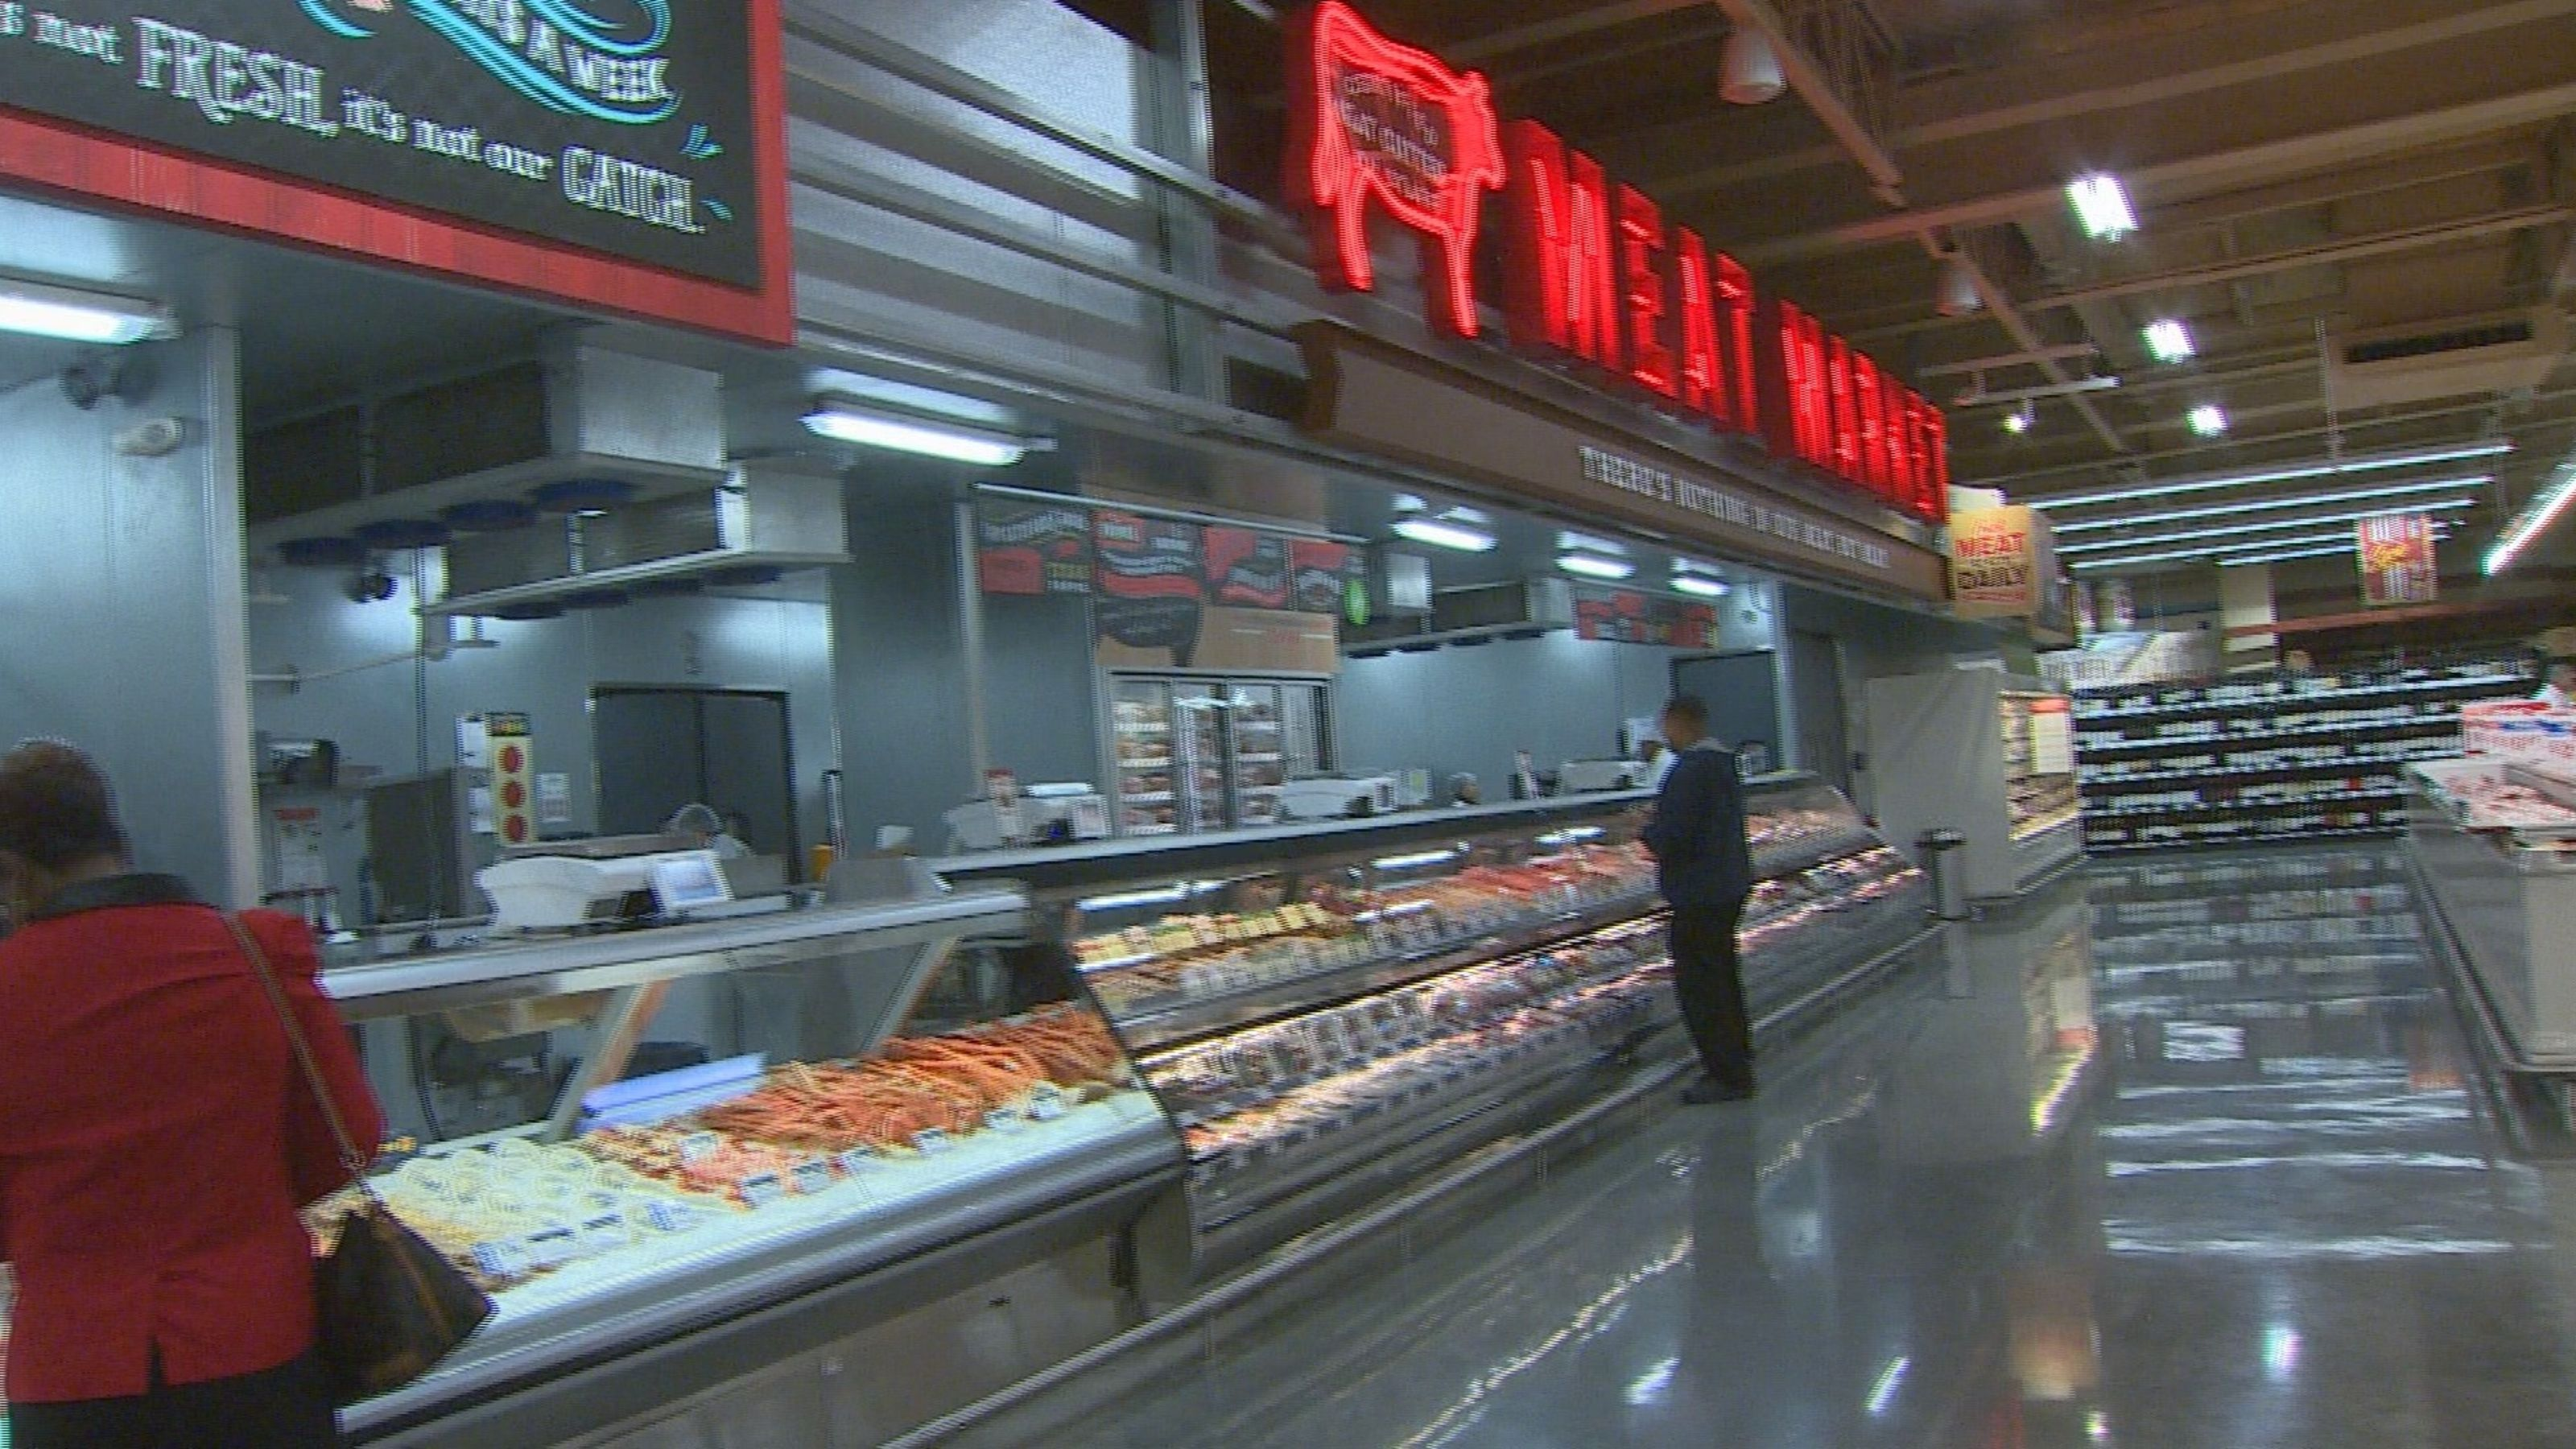 New Houston HEB Grocery Store - It has a restaurant, live music stage and a big vertical garden